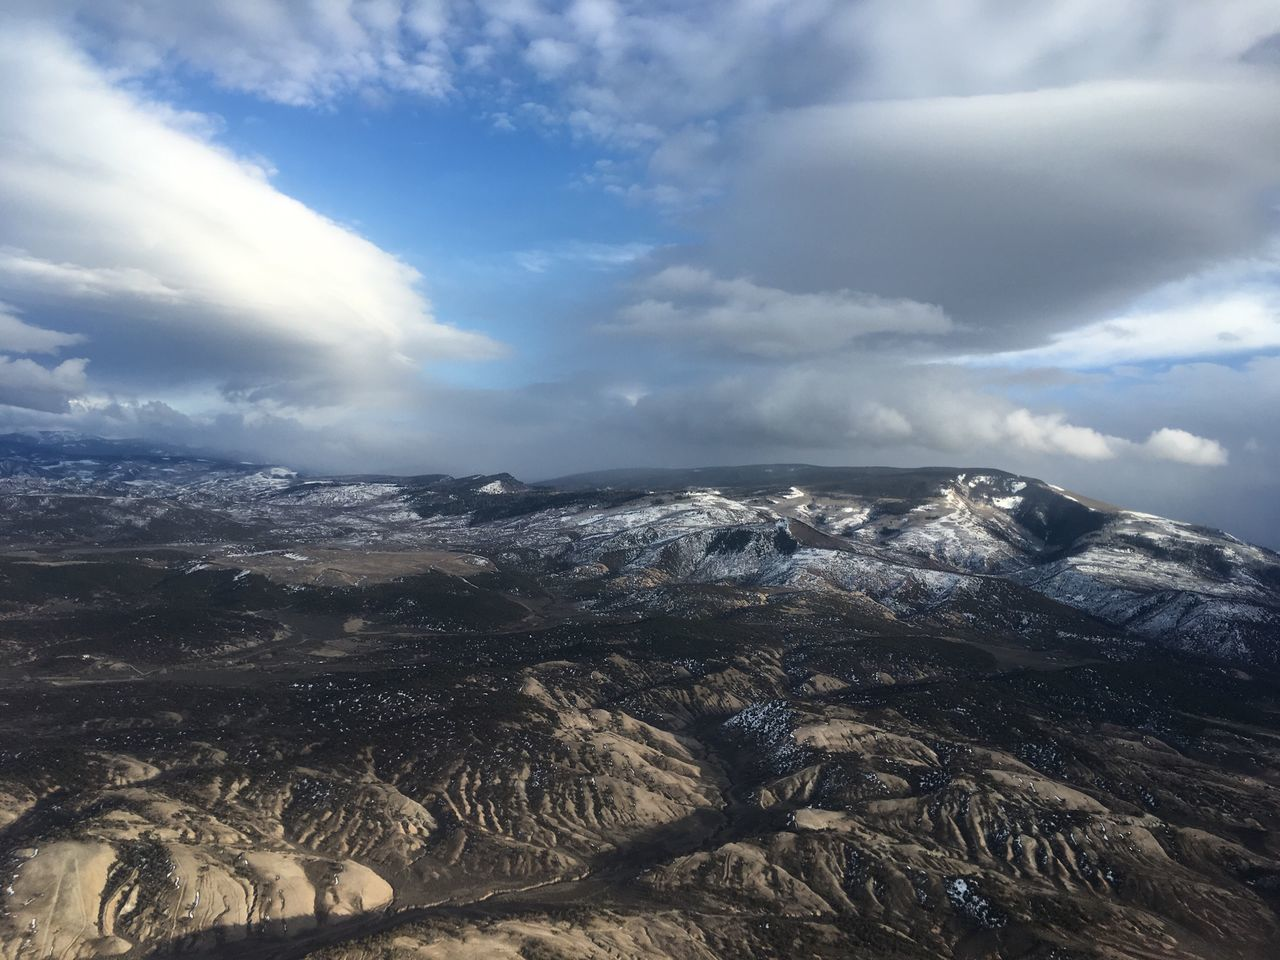 Departing the Burtonusopen via Eagle County Airport provided some amazing views from the Windowseat as I made my way to Denver and the next Snowboarding adventure